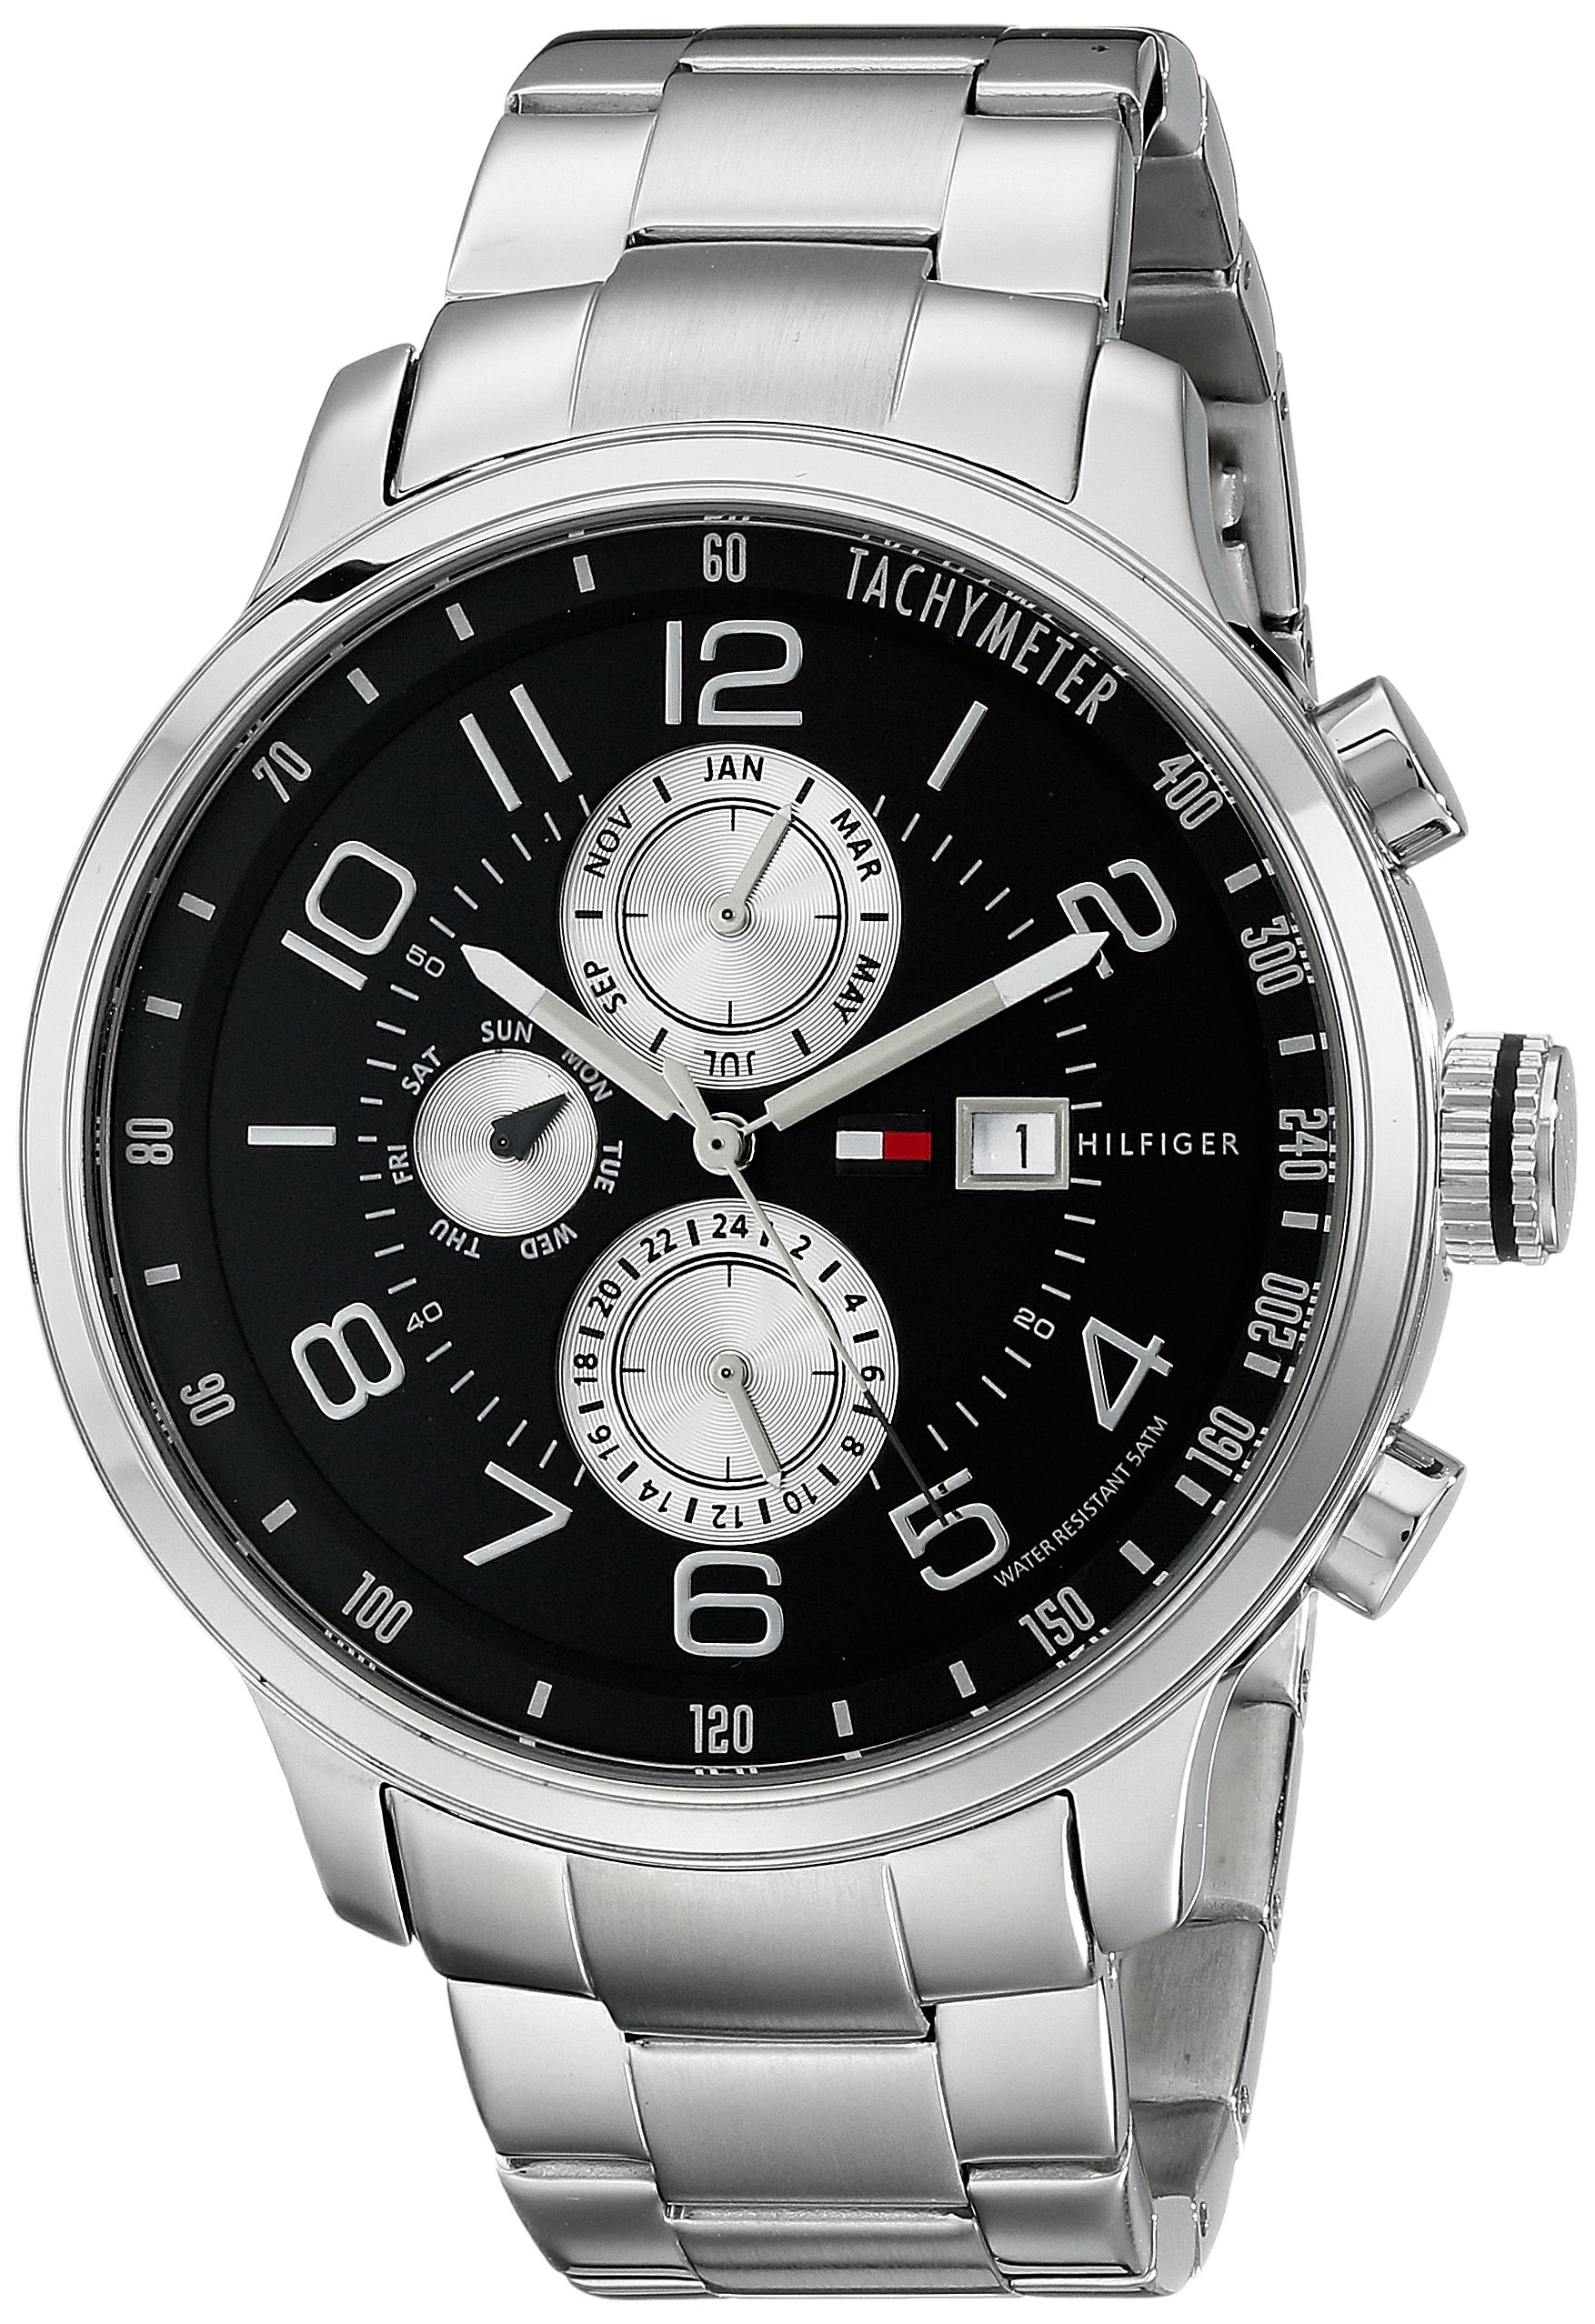 Tommy Hilfiger Men's 1790860 Stainless Steel Watch With Link Bracelet 6